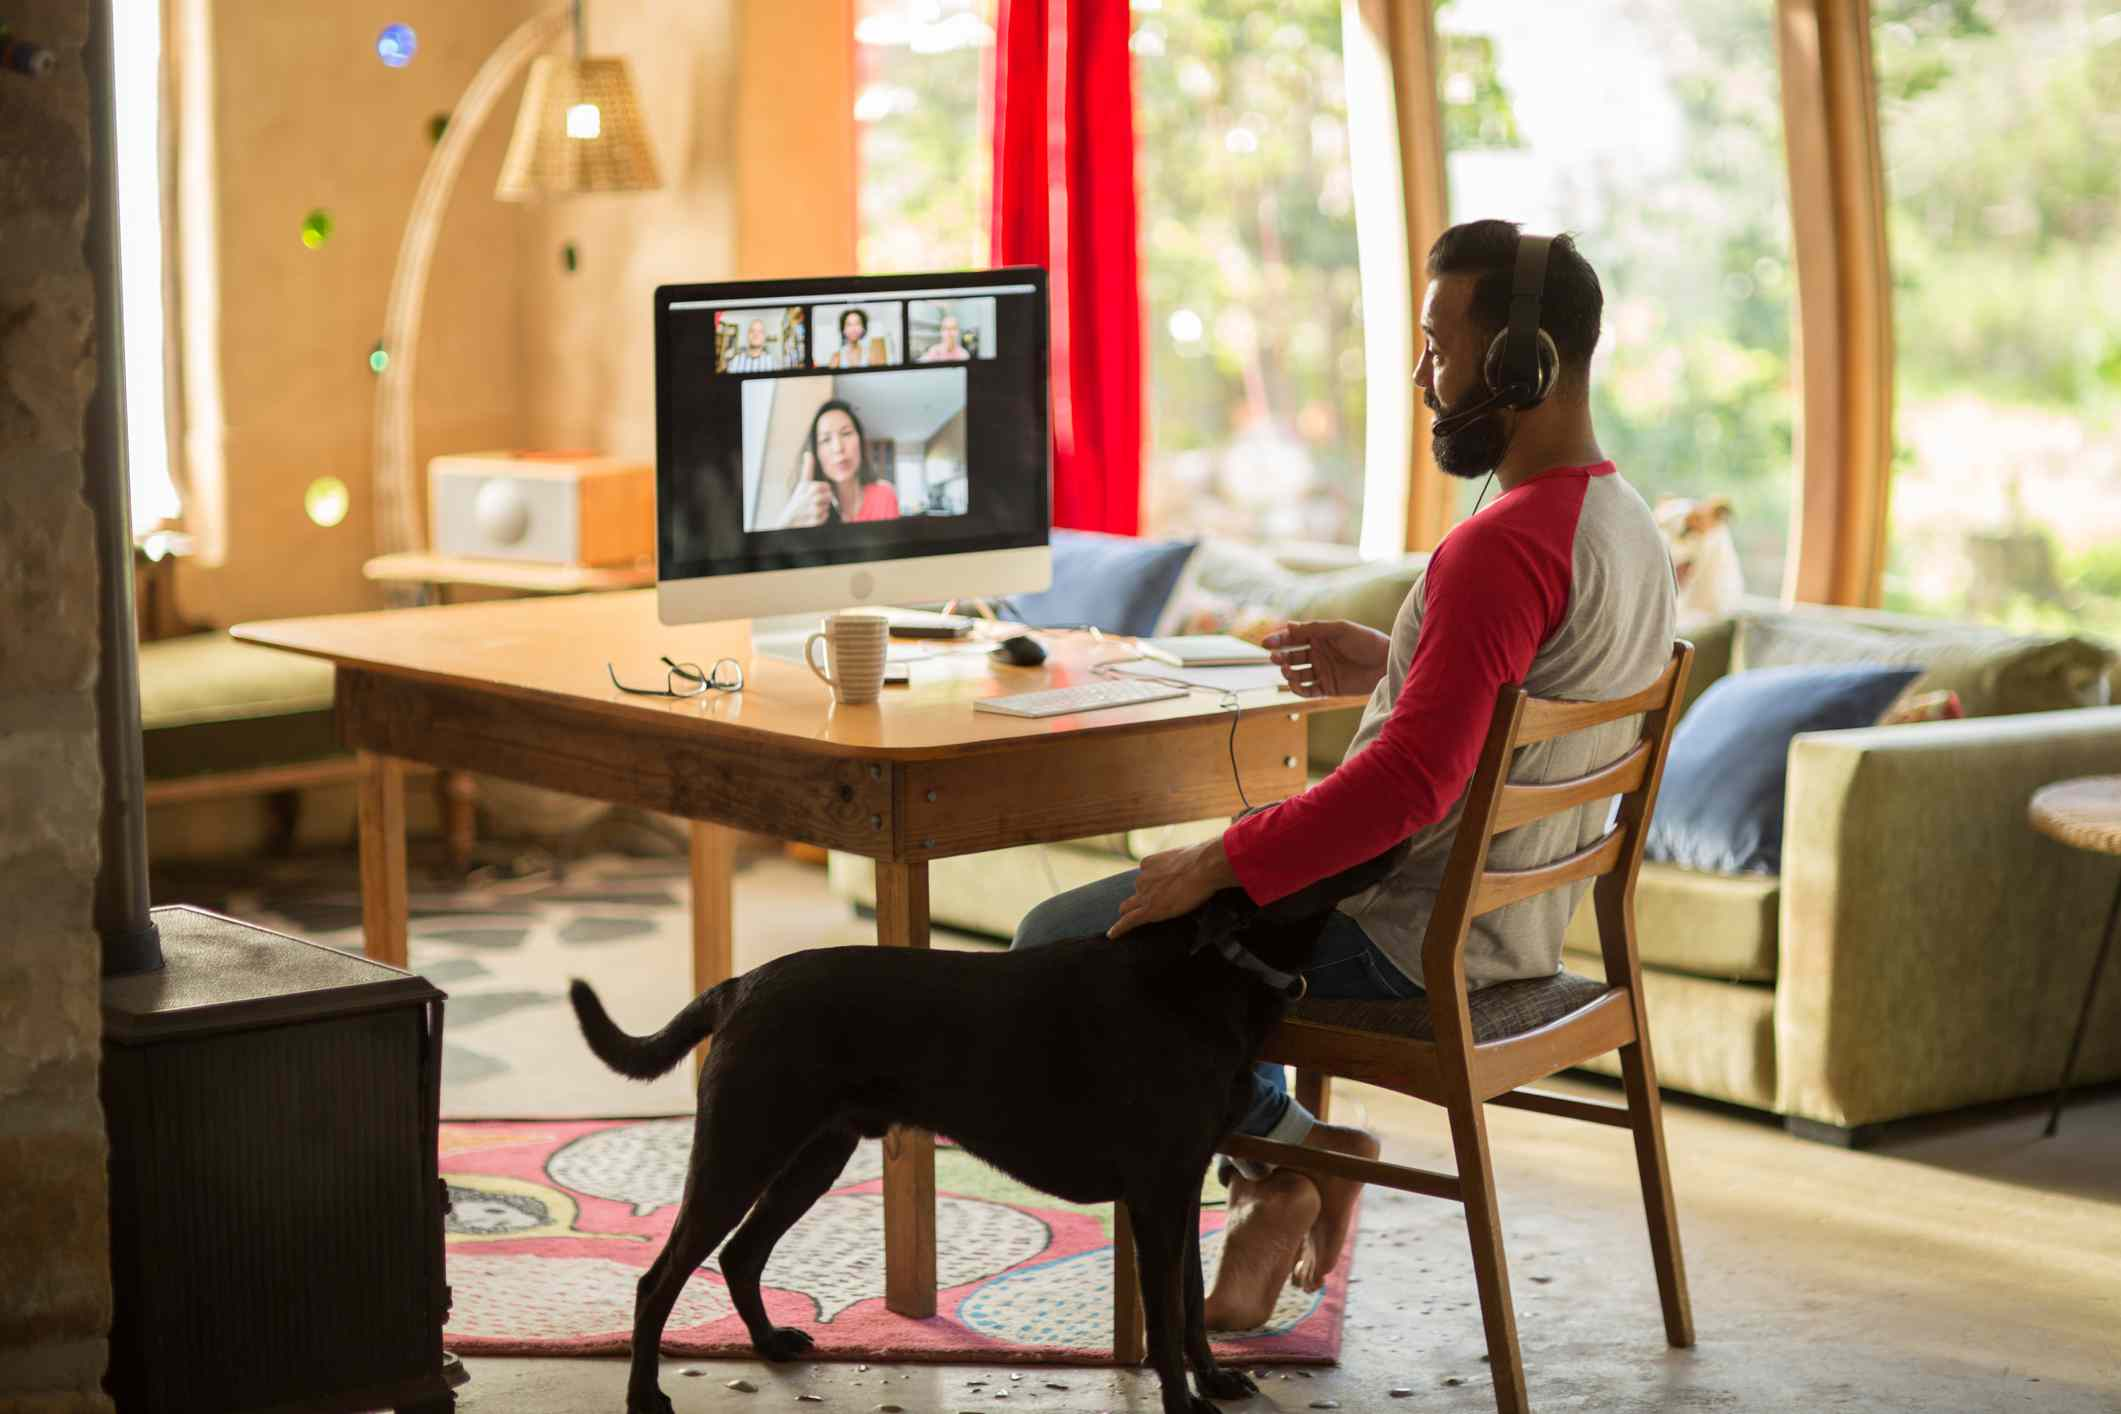 Man working from home on his computer and petting his dog during lockdown